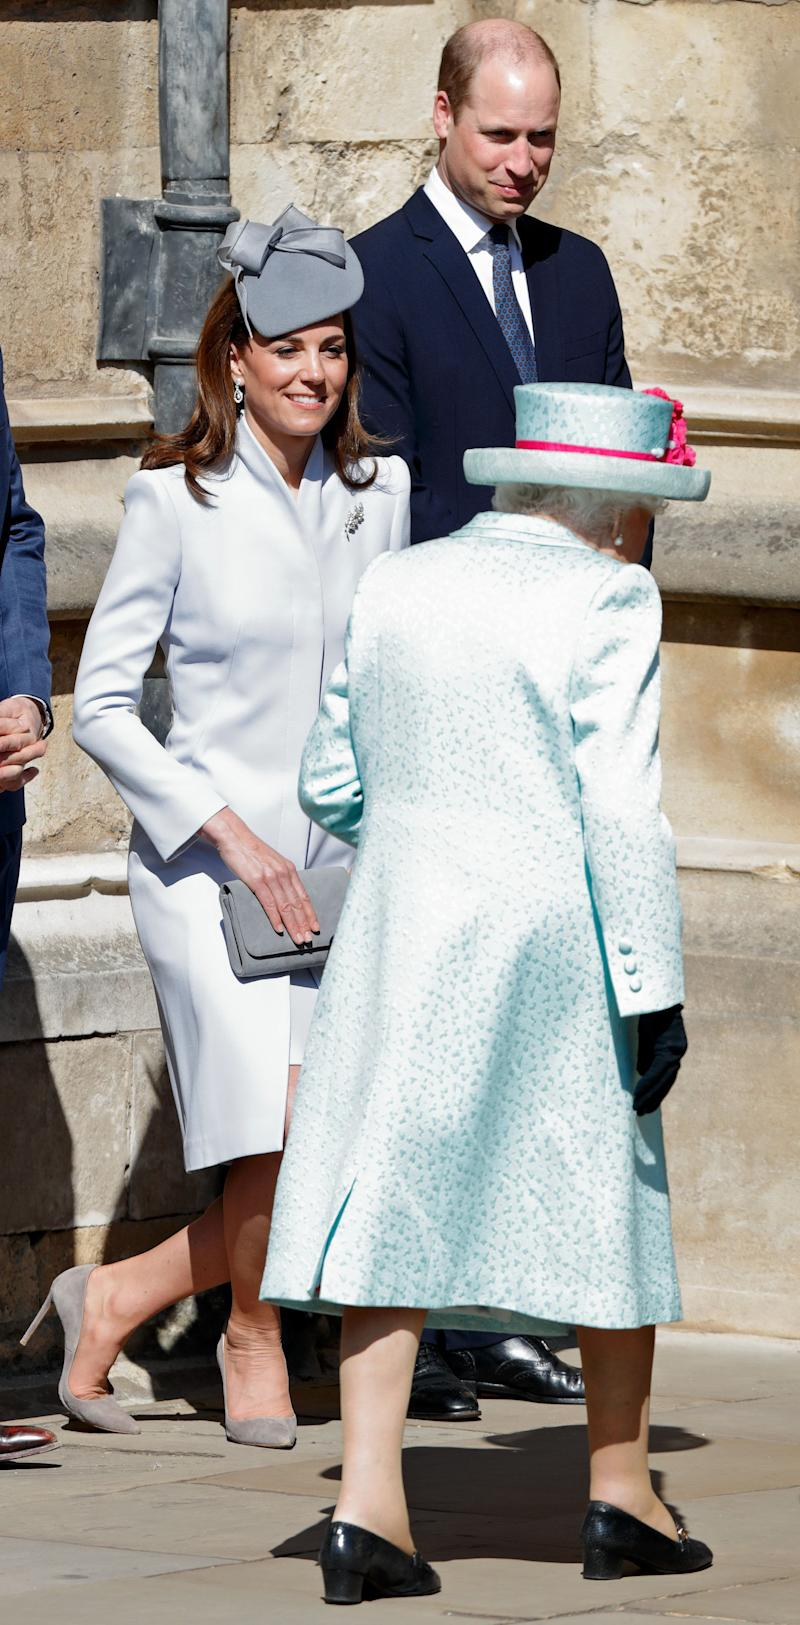 WINDSOR, UNITED KINGDOM - APRIL 21: (EMBARGOED FOR PUBLICATION IN UK NEWSPAPERS UNTIL 24 HOURS AFTER CREATE DATE AND TIME) Prince William, Duke of Cambridge looks on as Catherine, Duchess of Cambridge curtsies to Queen Elizabeth II as they attend the traditional Easter Sunday church service at St George's Chapel, Windsor Castle on April 21, 2019 in Windsor, England. Easter Sunday this year coincides with Queen Elizabeth II's 93rd birthday. (Photo by Max Mumby/Indigo/Getty Images)